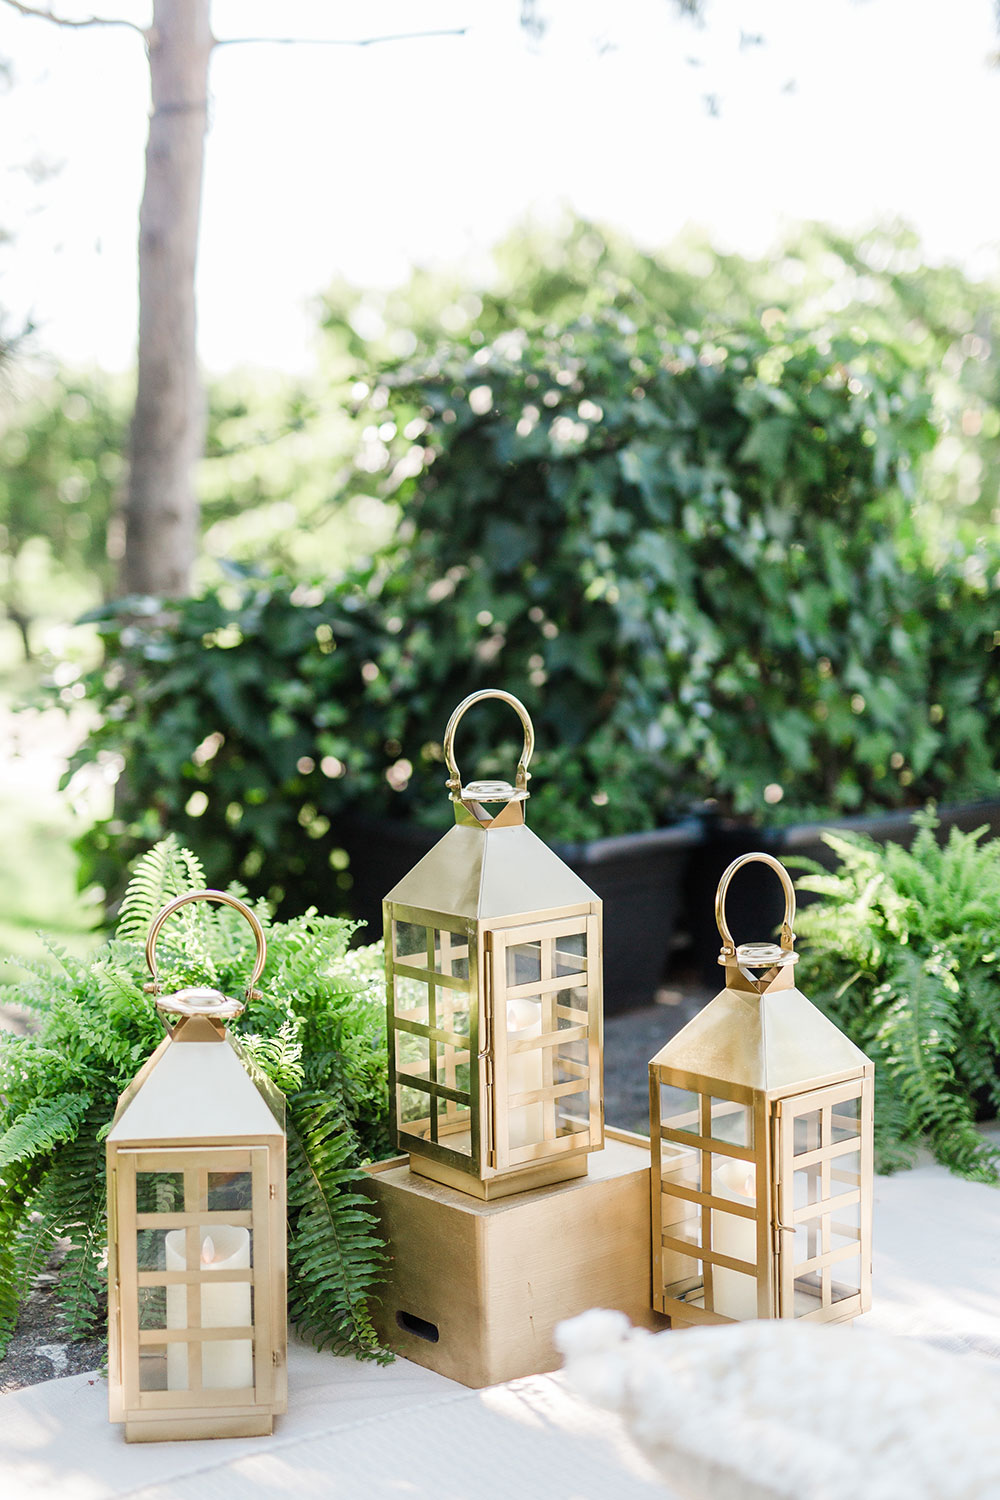 kurtz-orchards-wedding-gracewood-estate-niagara-on-the-lake-photo-by-katie-nicolle-photography-0068.JPG